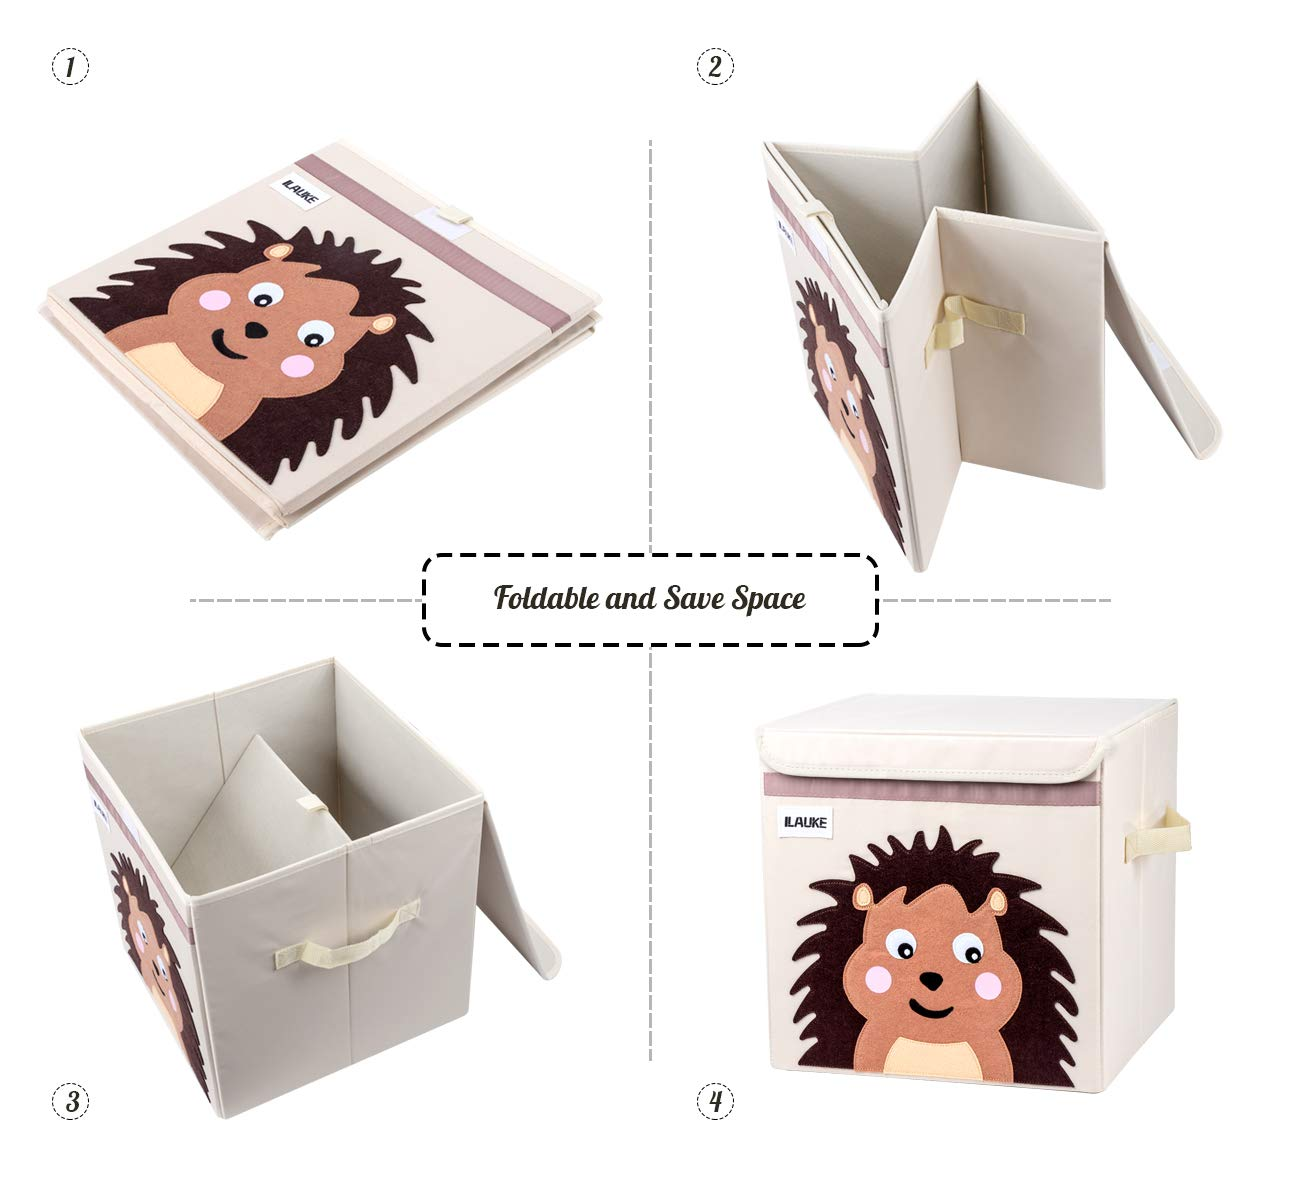 Hedgehog Kids Playroom Lemonfilter Kids Cube Storage Box with Lid Children/'s Room Foldable Fabric Storage Cube Bins Boxes Organizer for Living Room